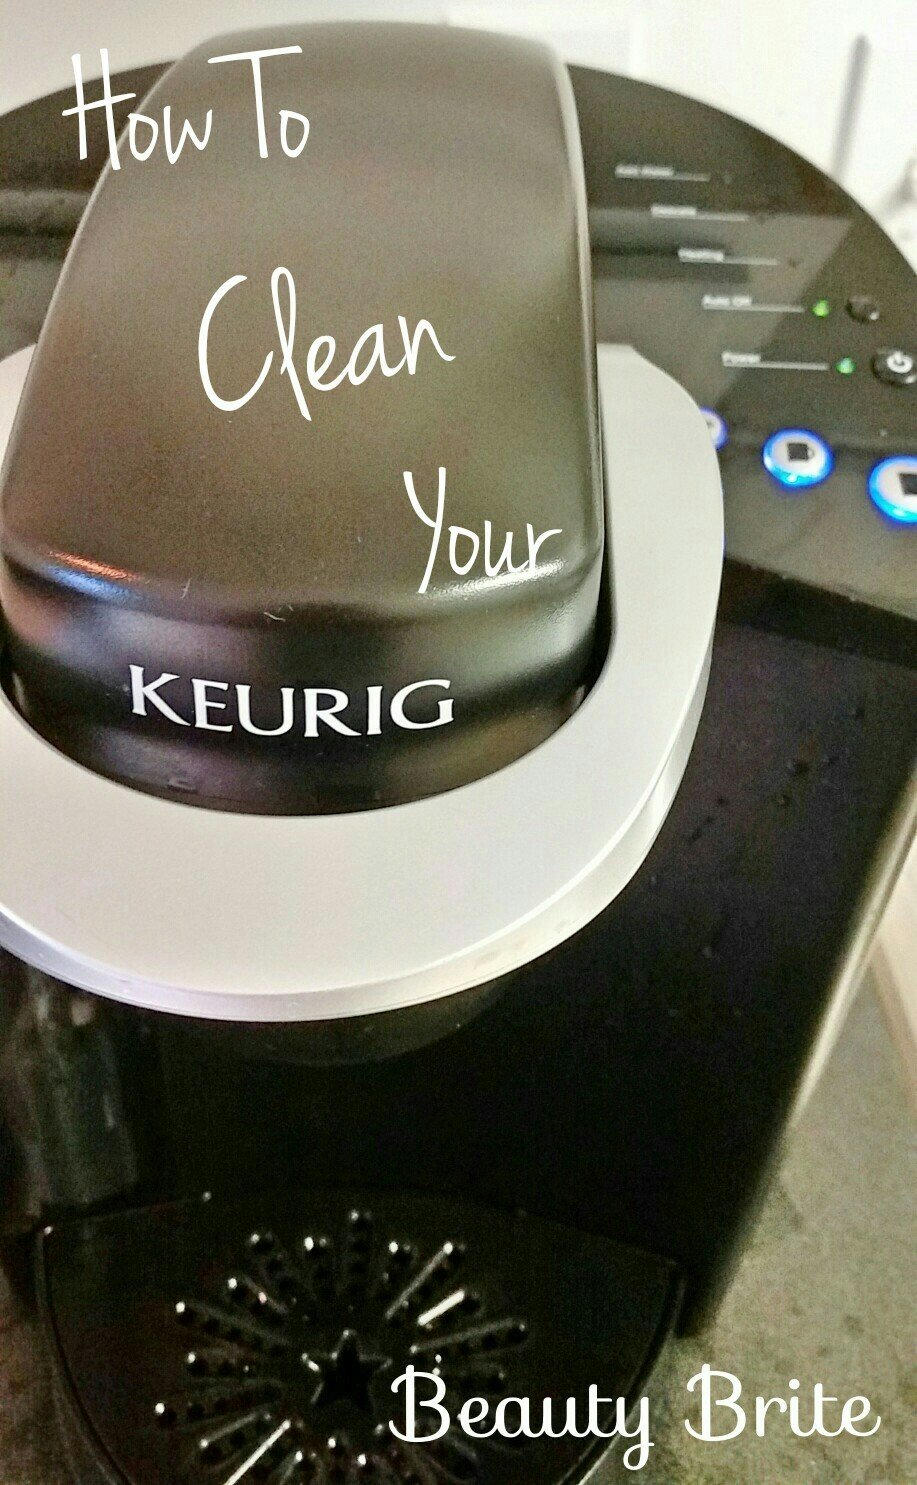 How To Clean Your Keurig Beauty Brite